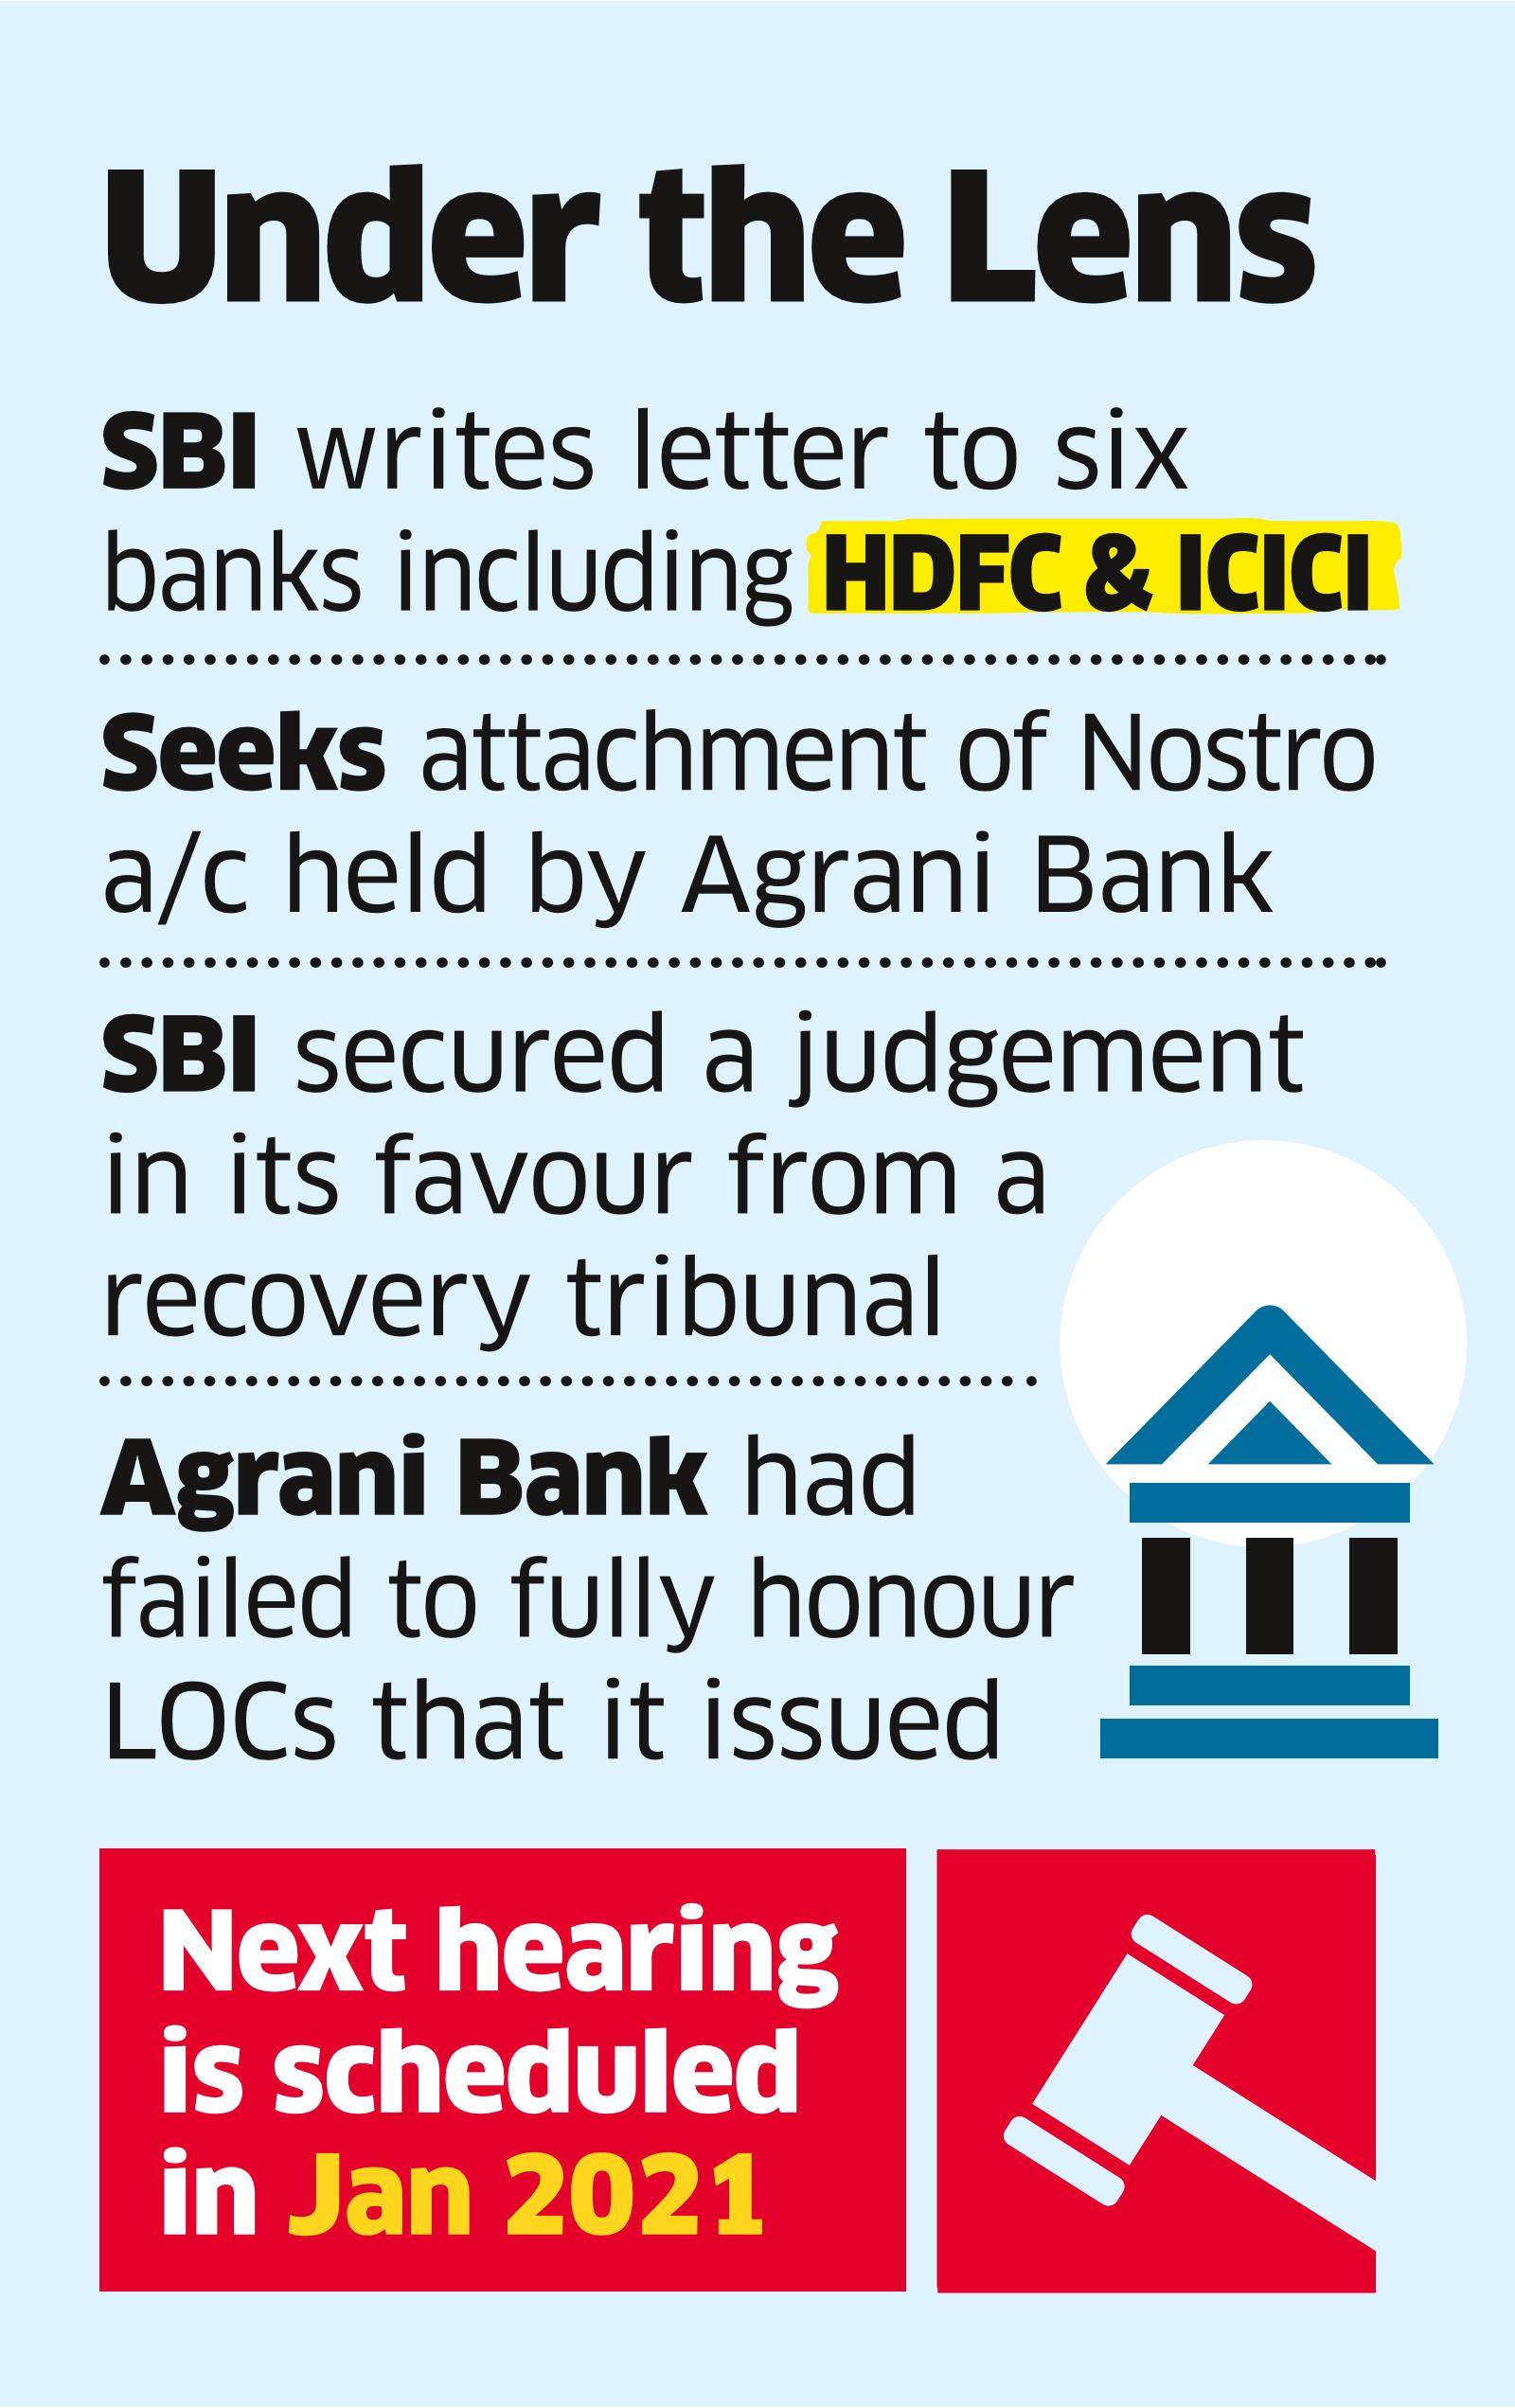 SBI Seeks Attachment of Bangladesh Bank's Nostro A/cs in India